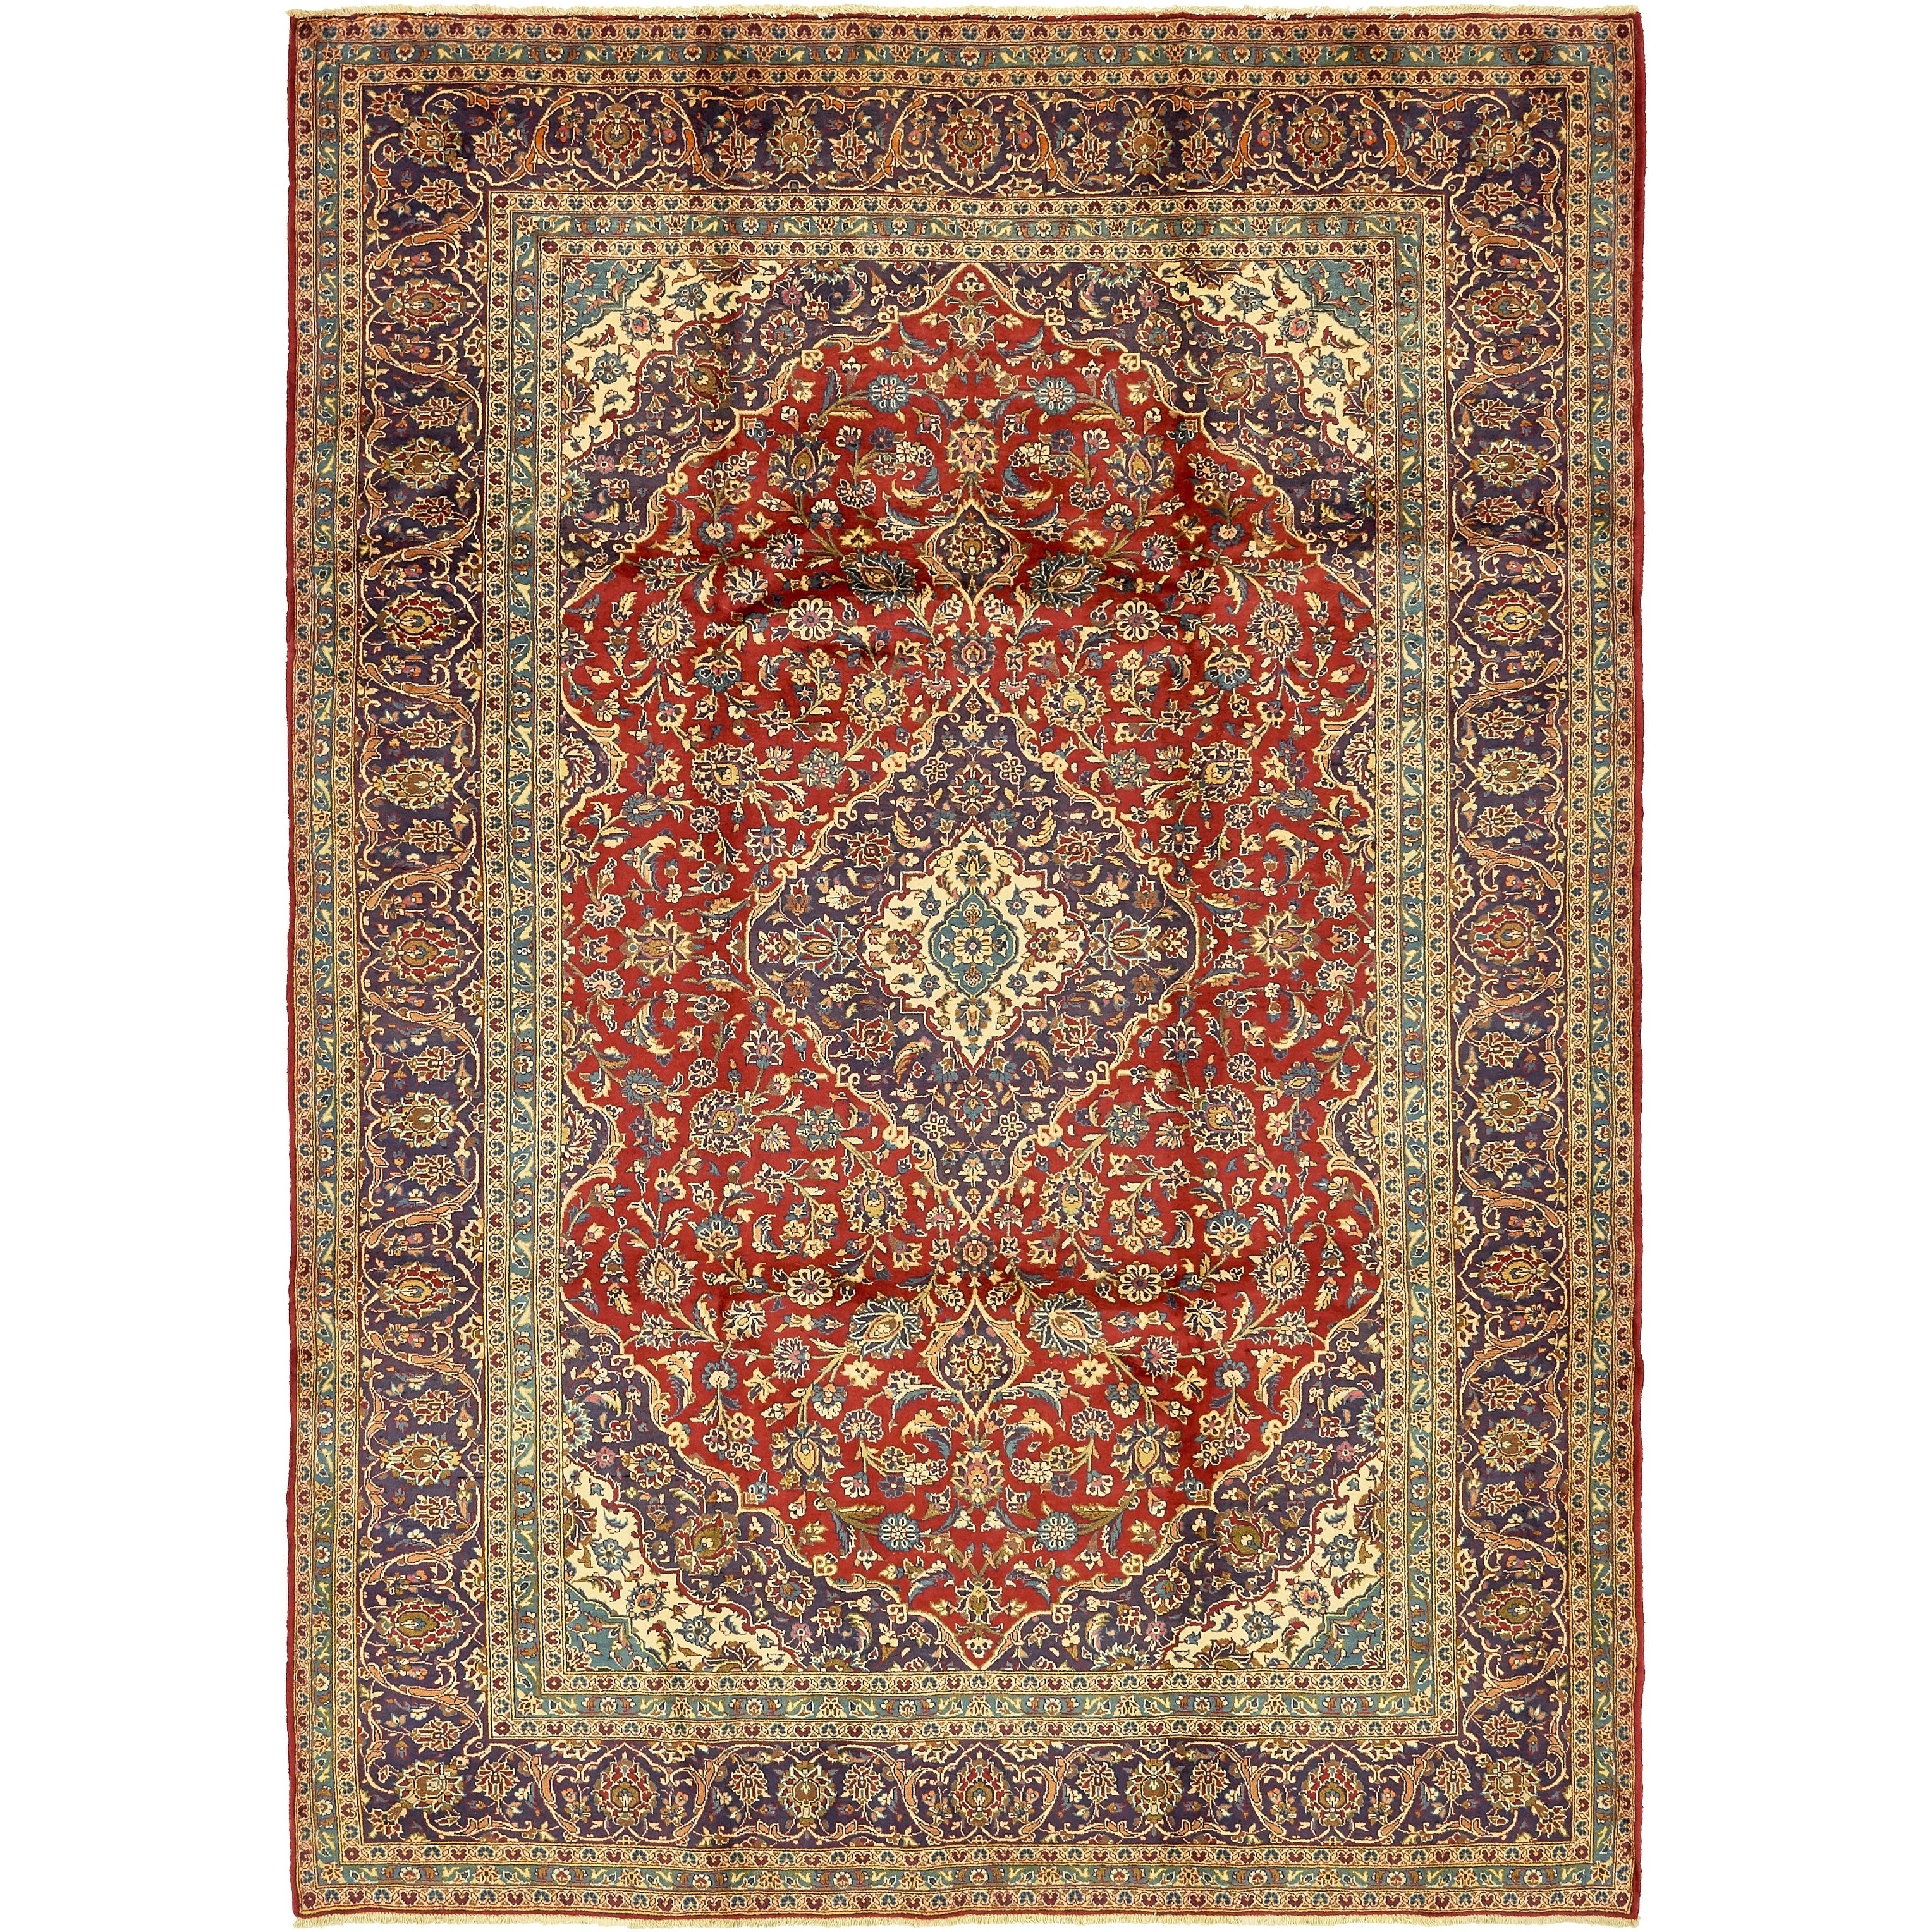 Hand Knotted Kashan Semi Antique Wool Area Rug - 8' 2 x 11' 9 (Red - 8' 2 x 11' 9)